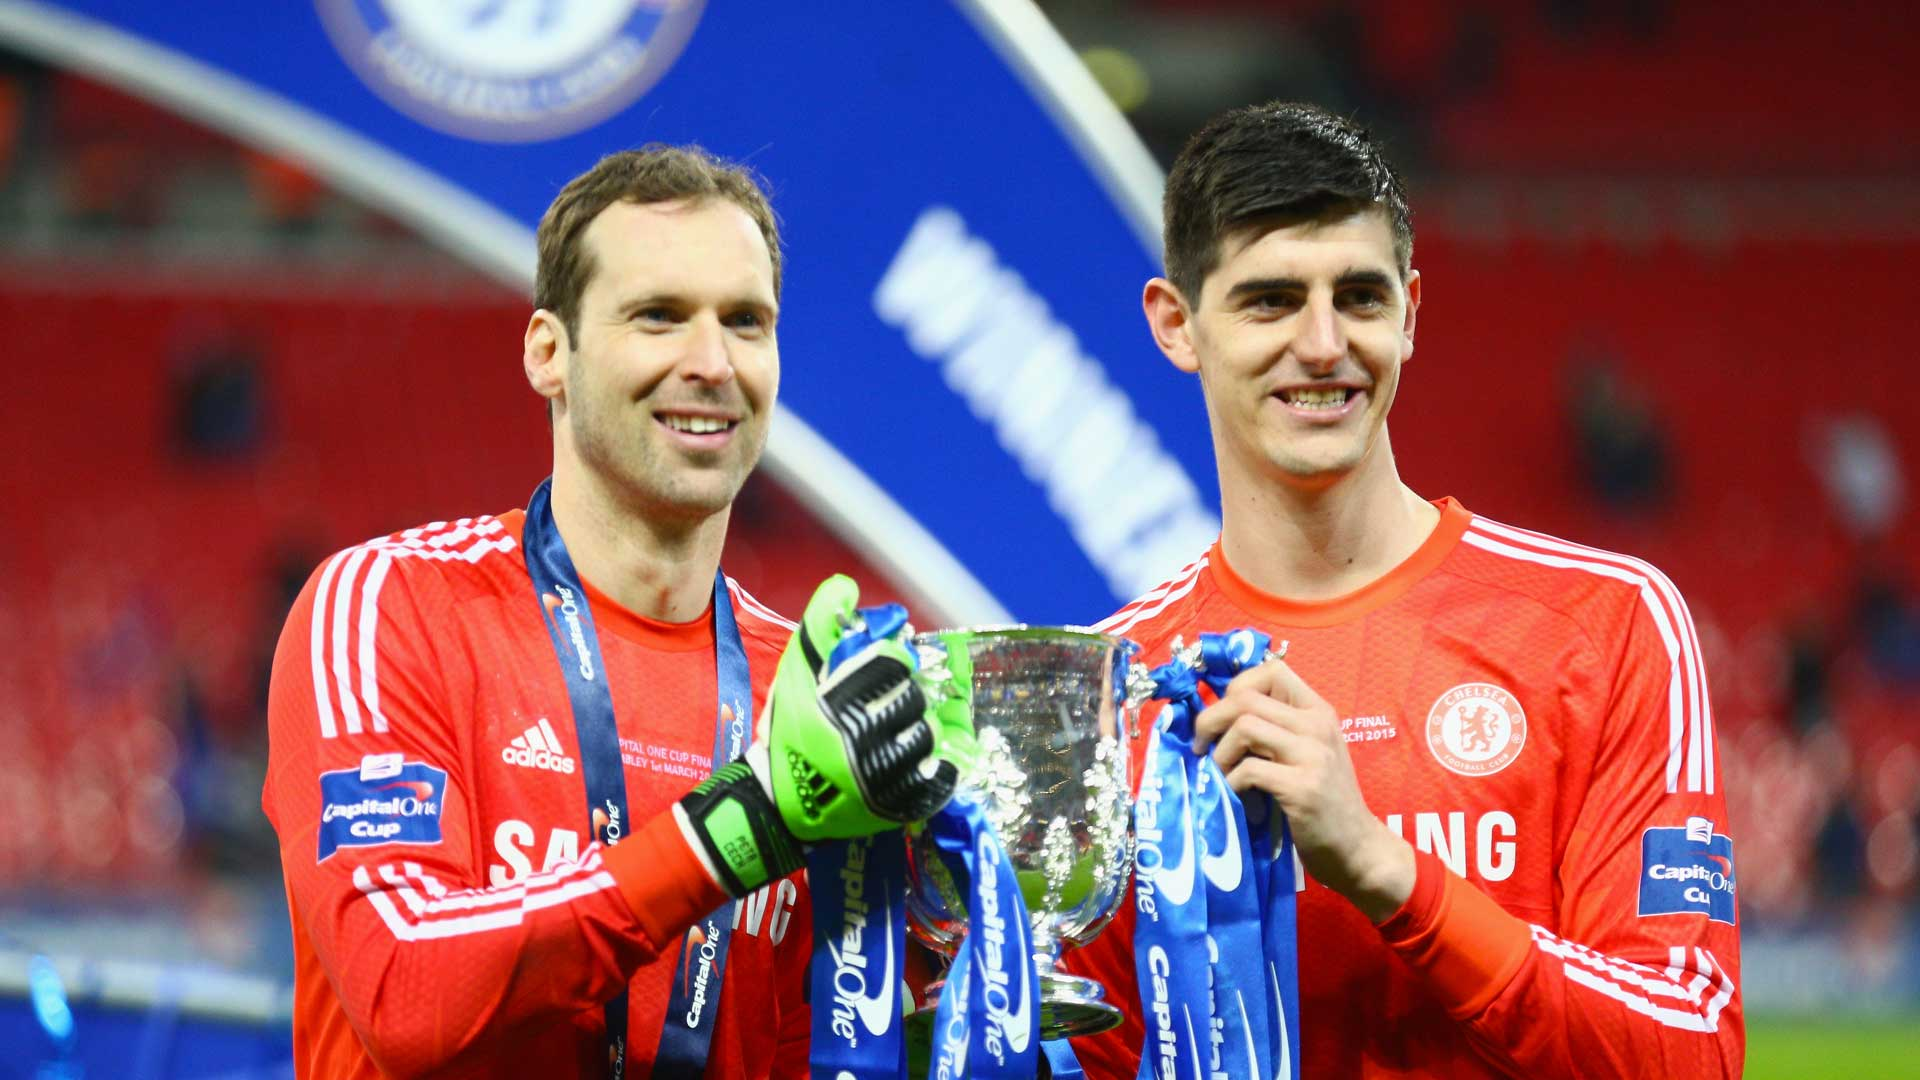 'I wasn't happy that Courtois was made No.1' – Cech reflects on Chelsea edging him towards Arsenal